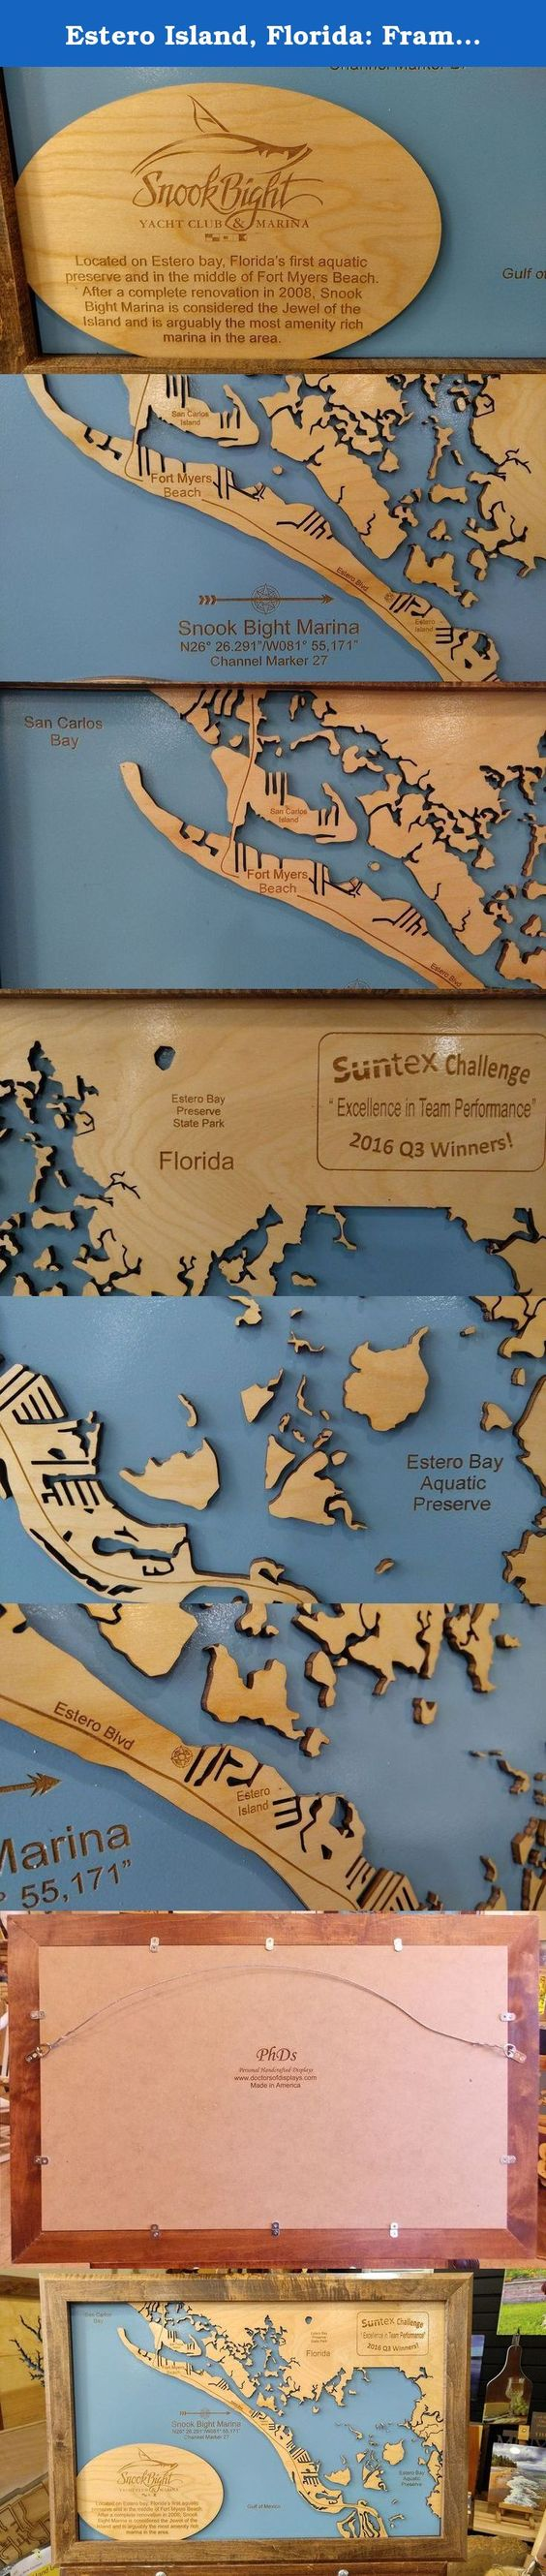 Estero Island Florida Framed Wood Map Wall Hanging This Is A - Florida map jigsaw puzzle